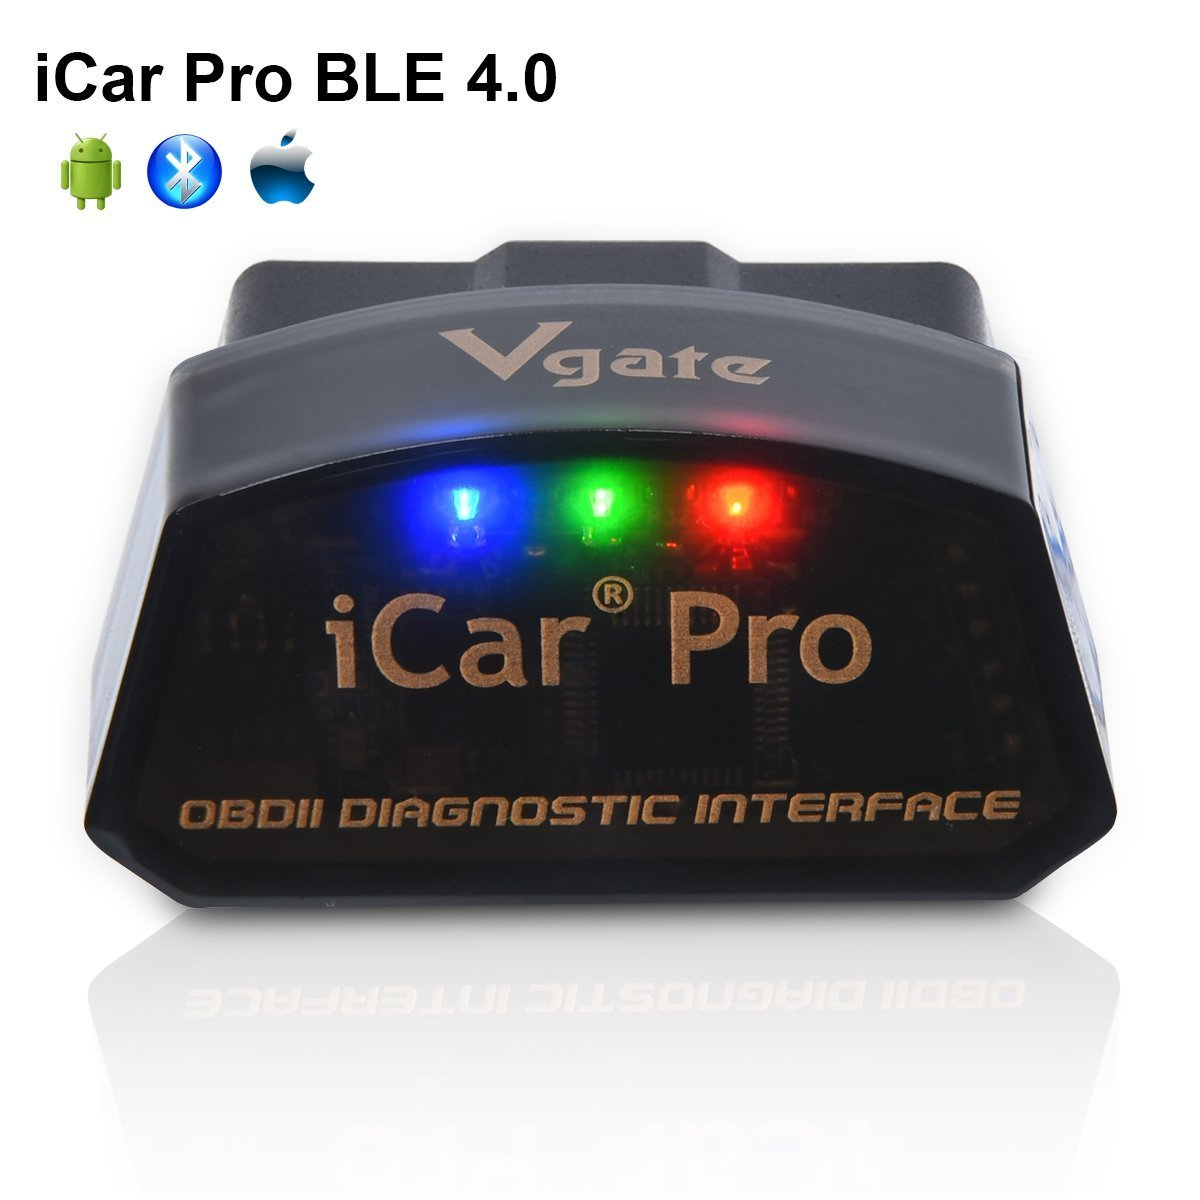 Vgate iCar Pro BLE 4 0 OBD2 Diagnostic Tool Fault Code Reader OBDII ELM327  Compatible Car Adapter Check Engine Light for iOS iPhone iPad/Android